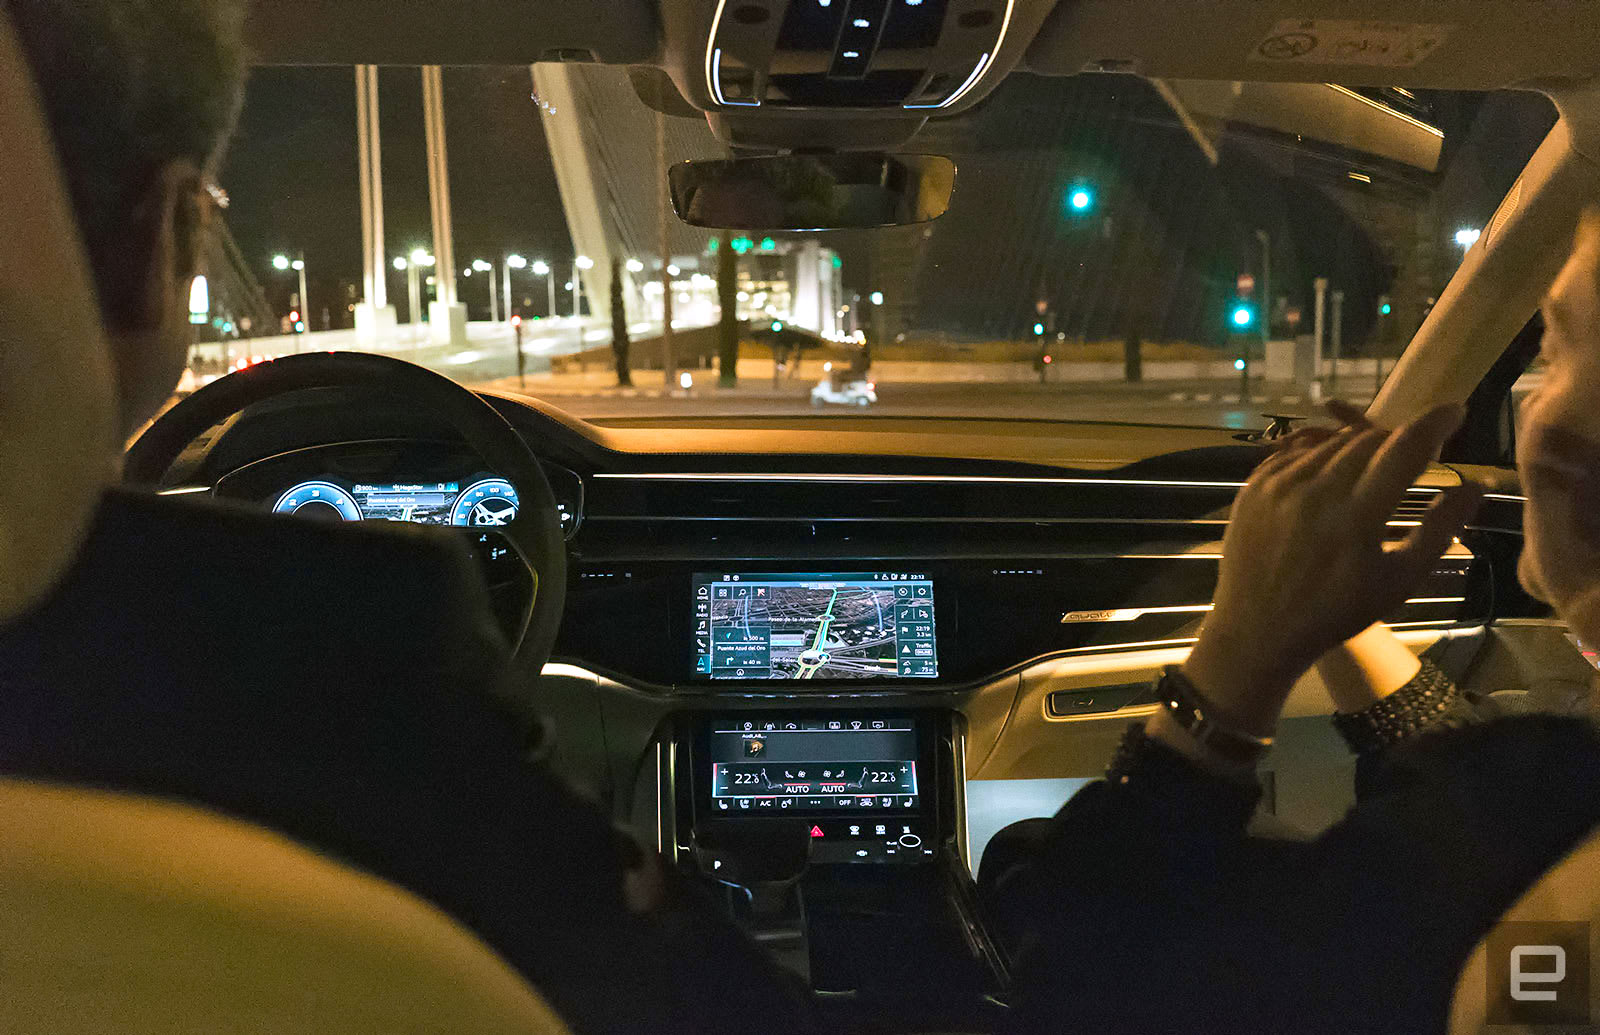 Audi's flagship A8 has an overwhelming amount of tech